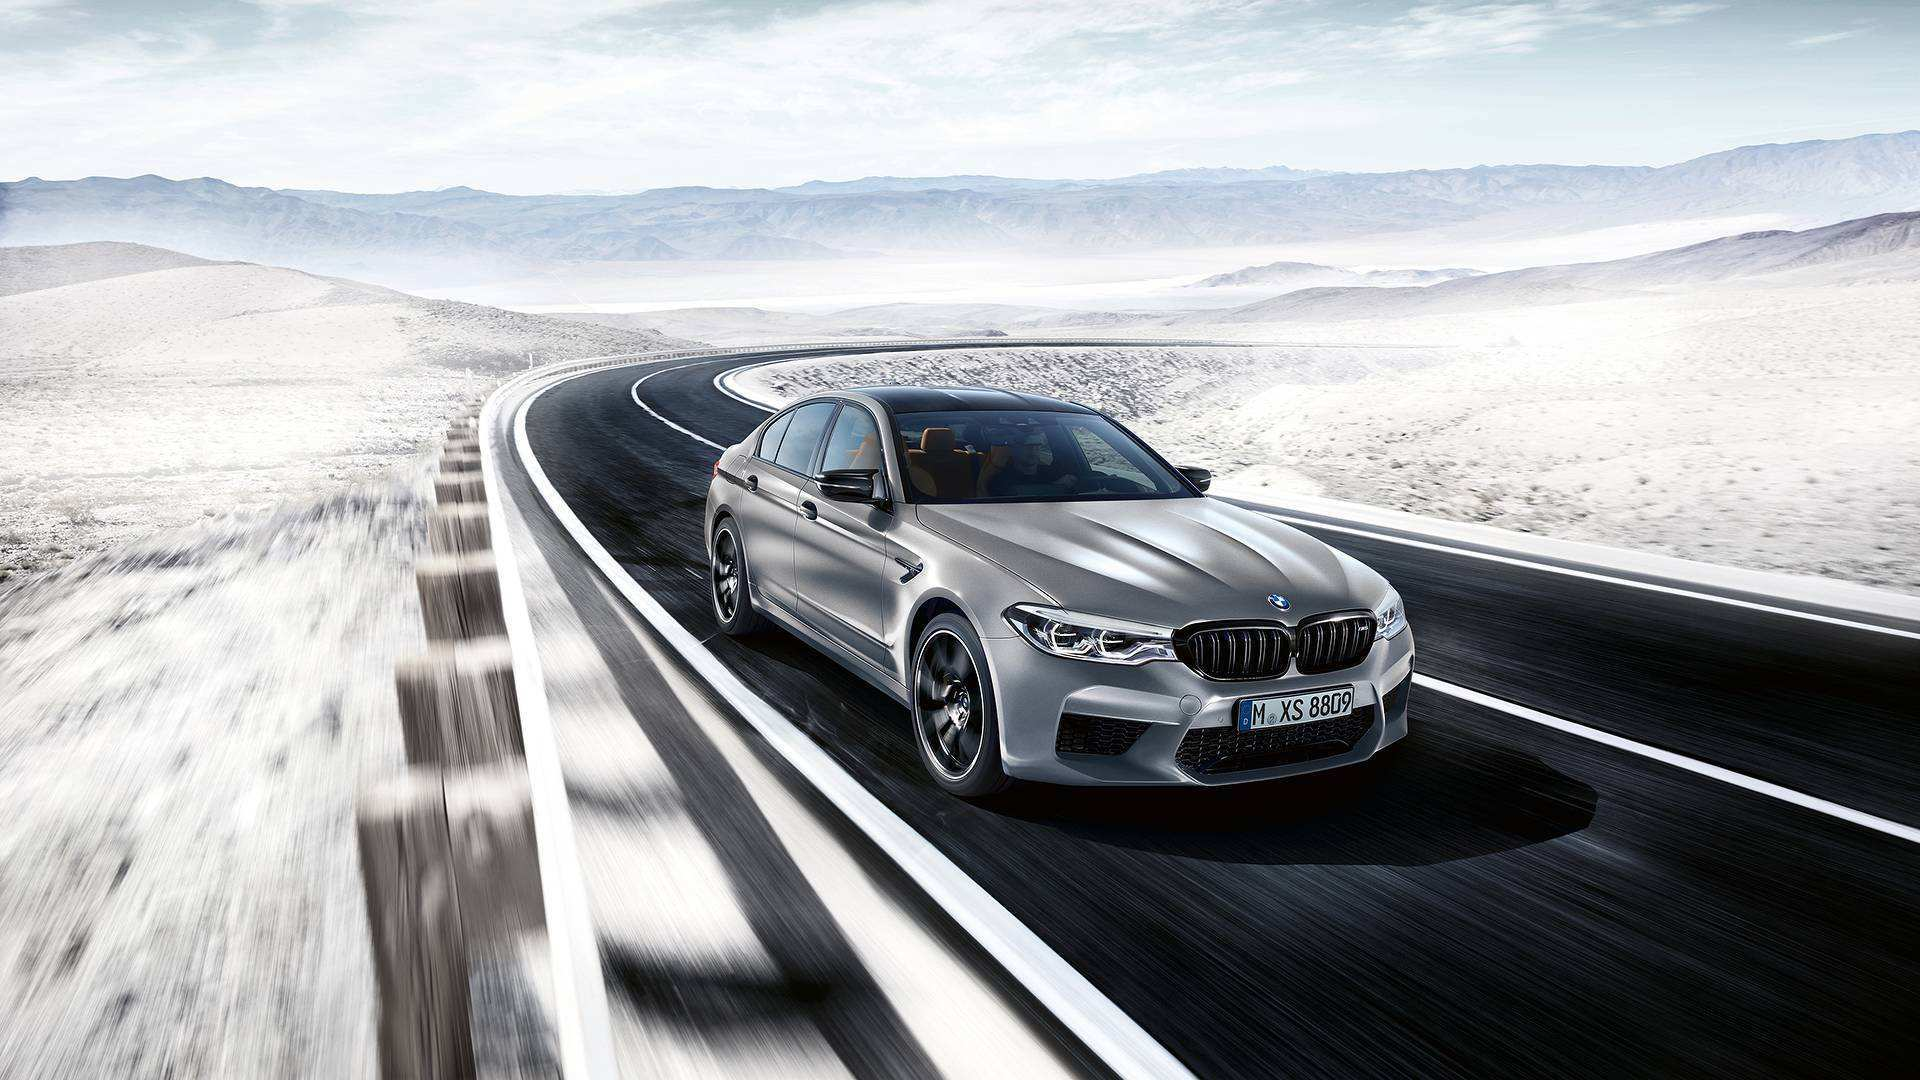 57 Concept of Bmw M5 Redesign Price and Review by Bmw M5 Redesign